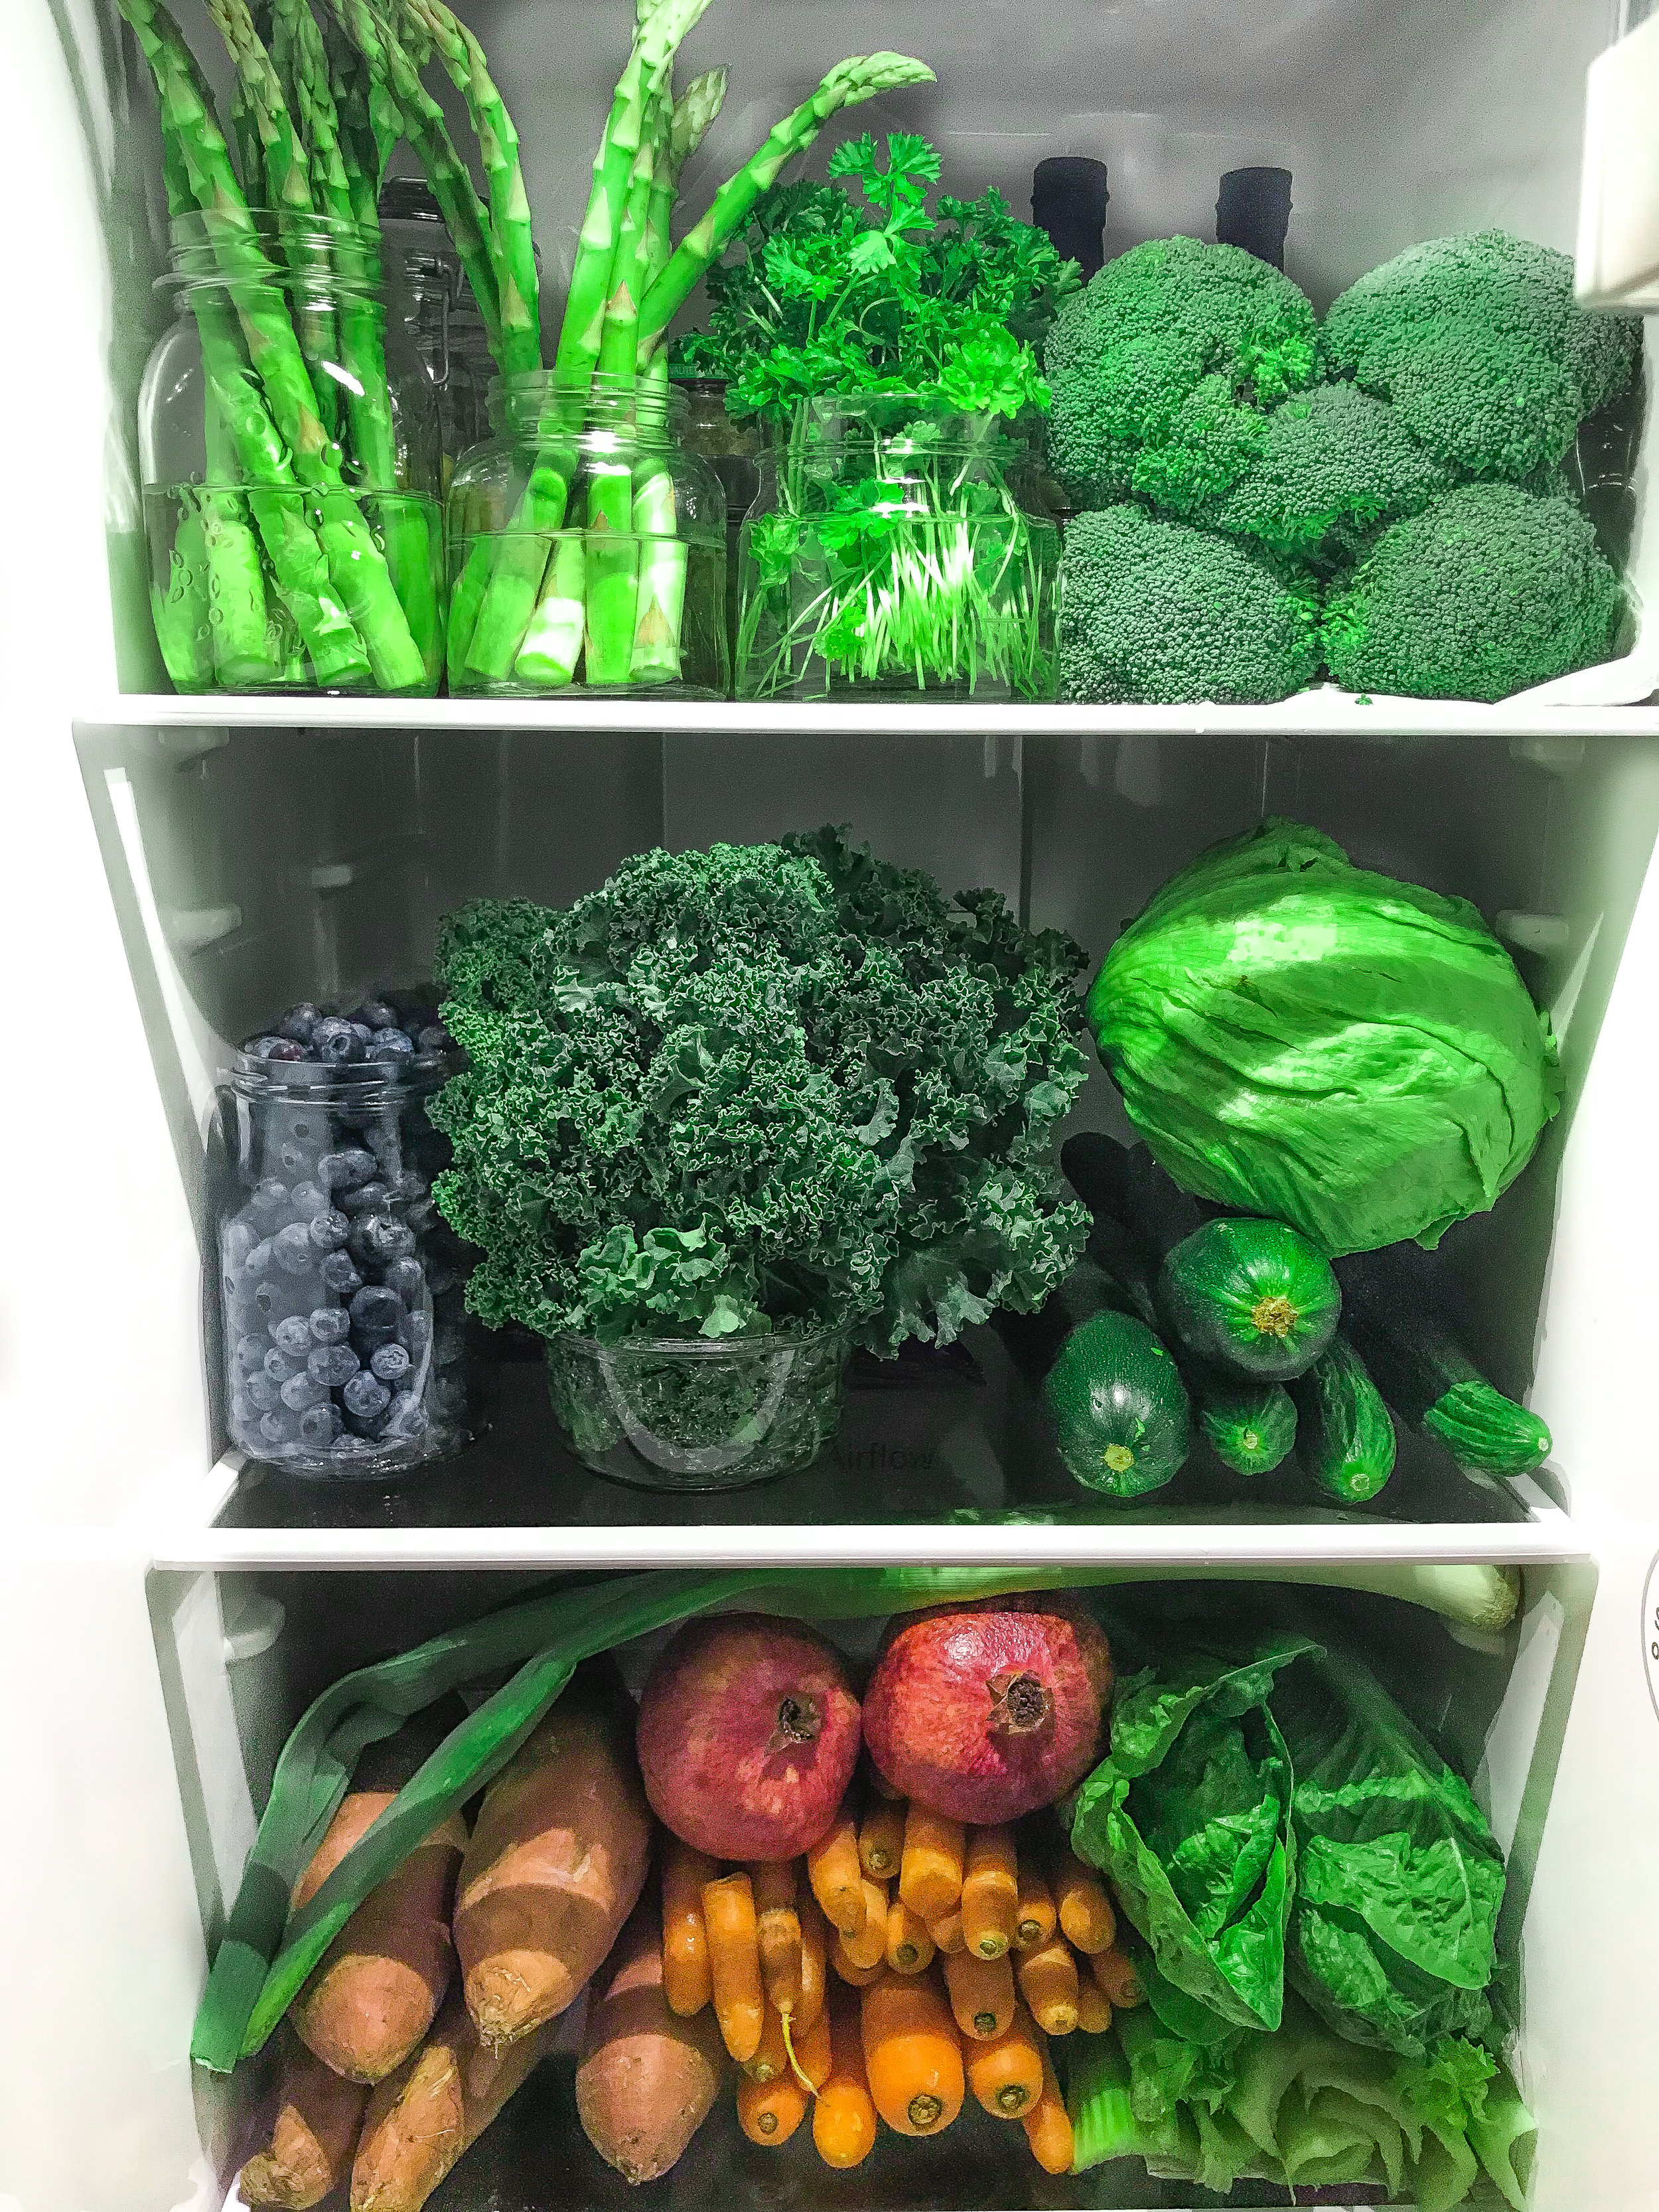 My fridge health and greens veggies healthy clean eating by Linda Haggh.jpg